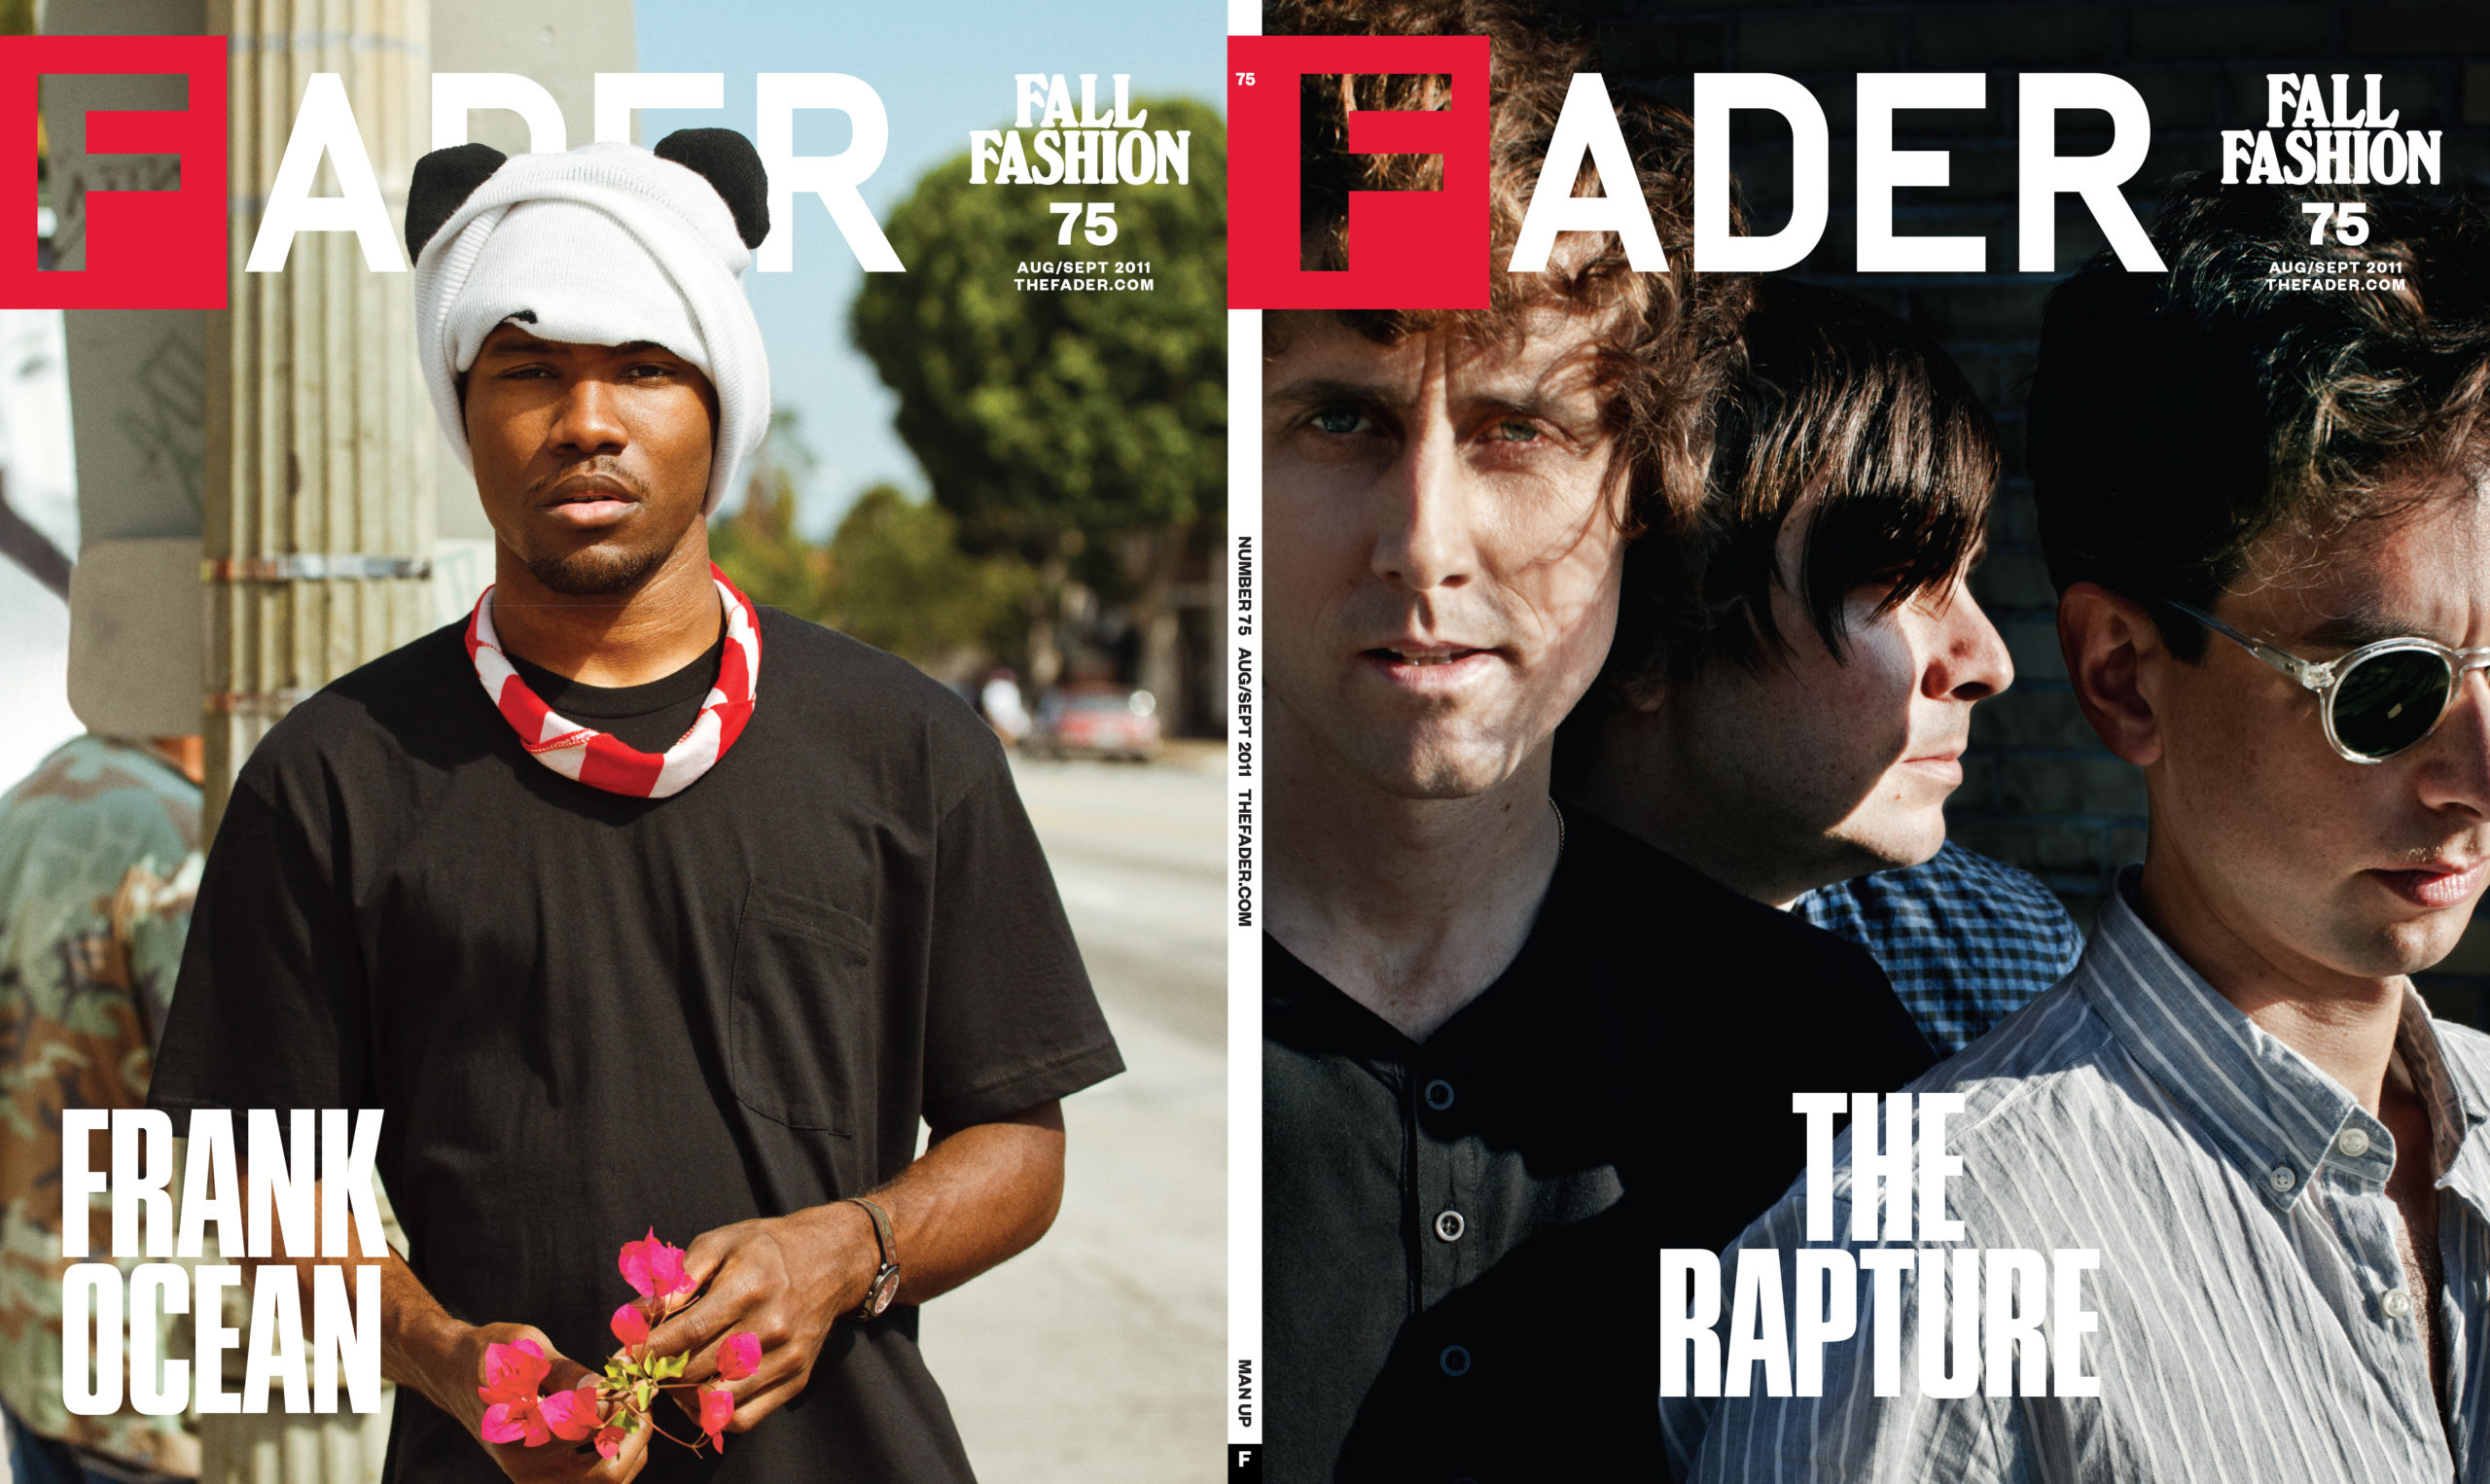 01_Cover41_Fader75